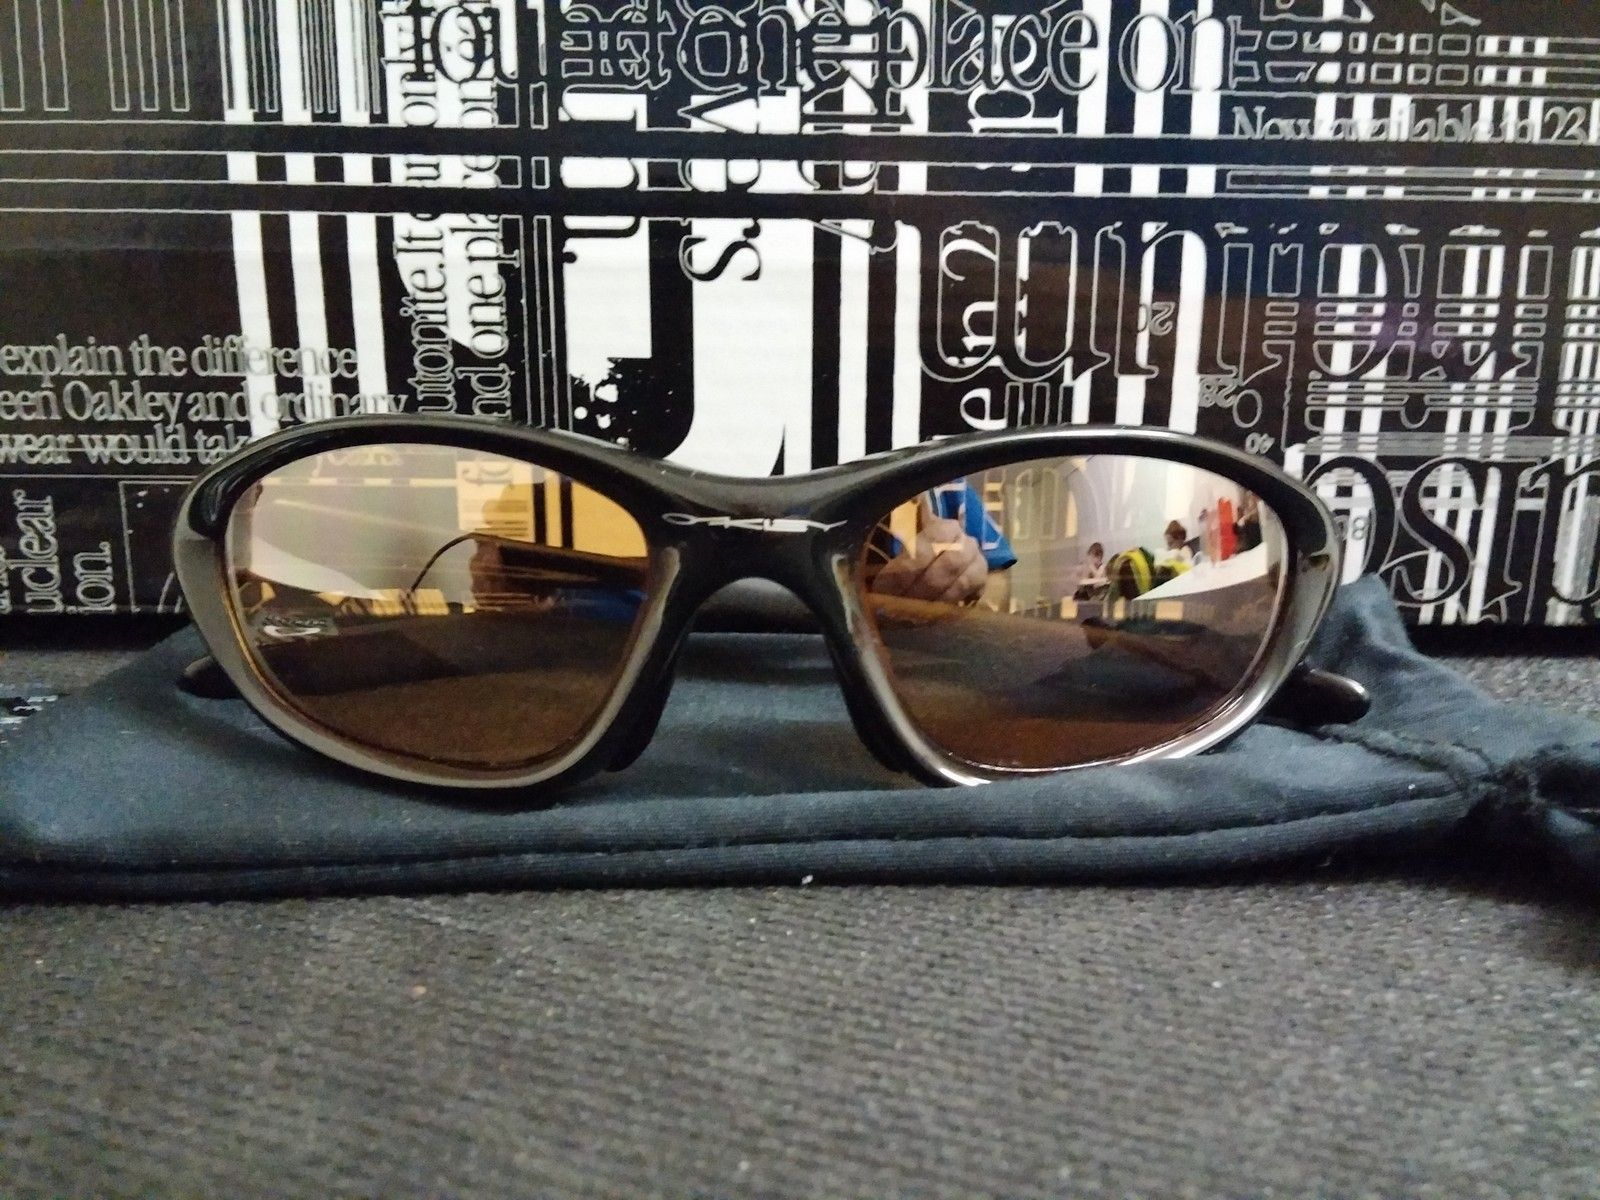 Fuel Cell, Scalpel, Vintage XX Glasses +lenses +rubber +boxes - l6n7.jpg